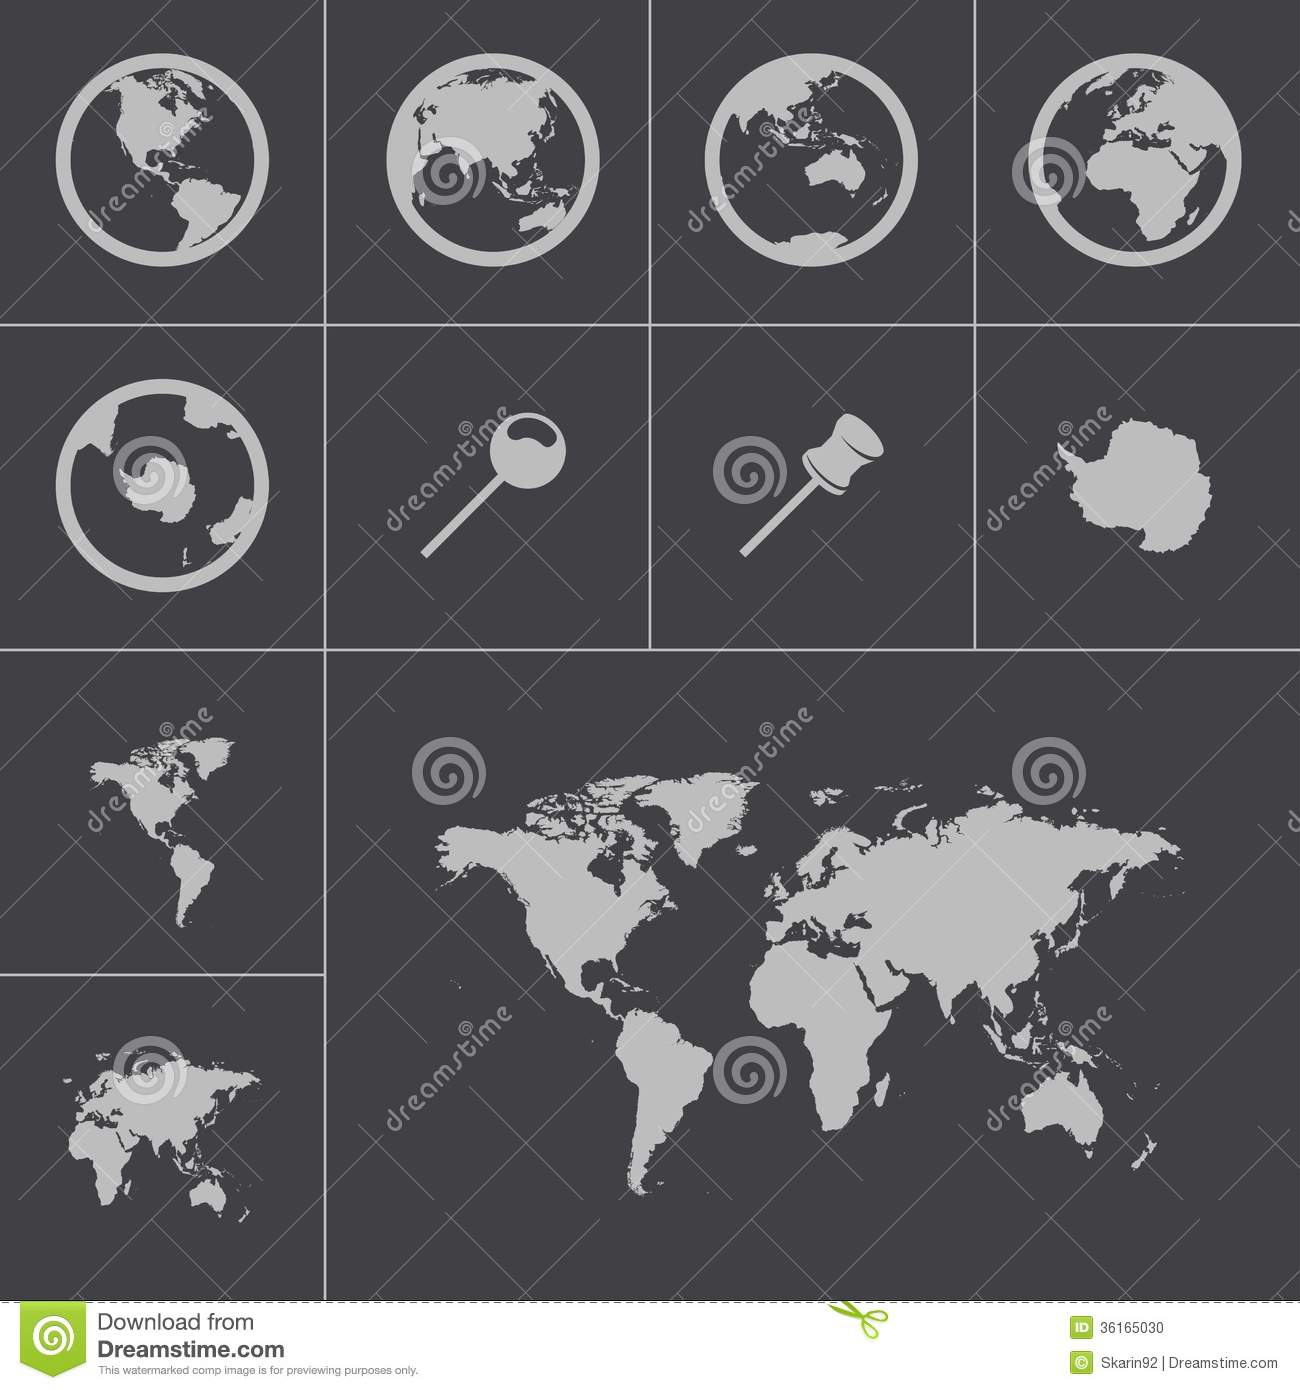 Vector black world map icons set stock vector illustration of sign vector black world map icons set gumiabroncs Choice Image